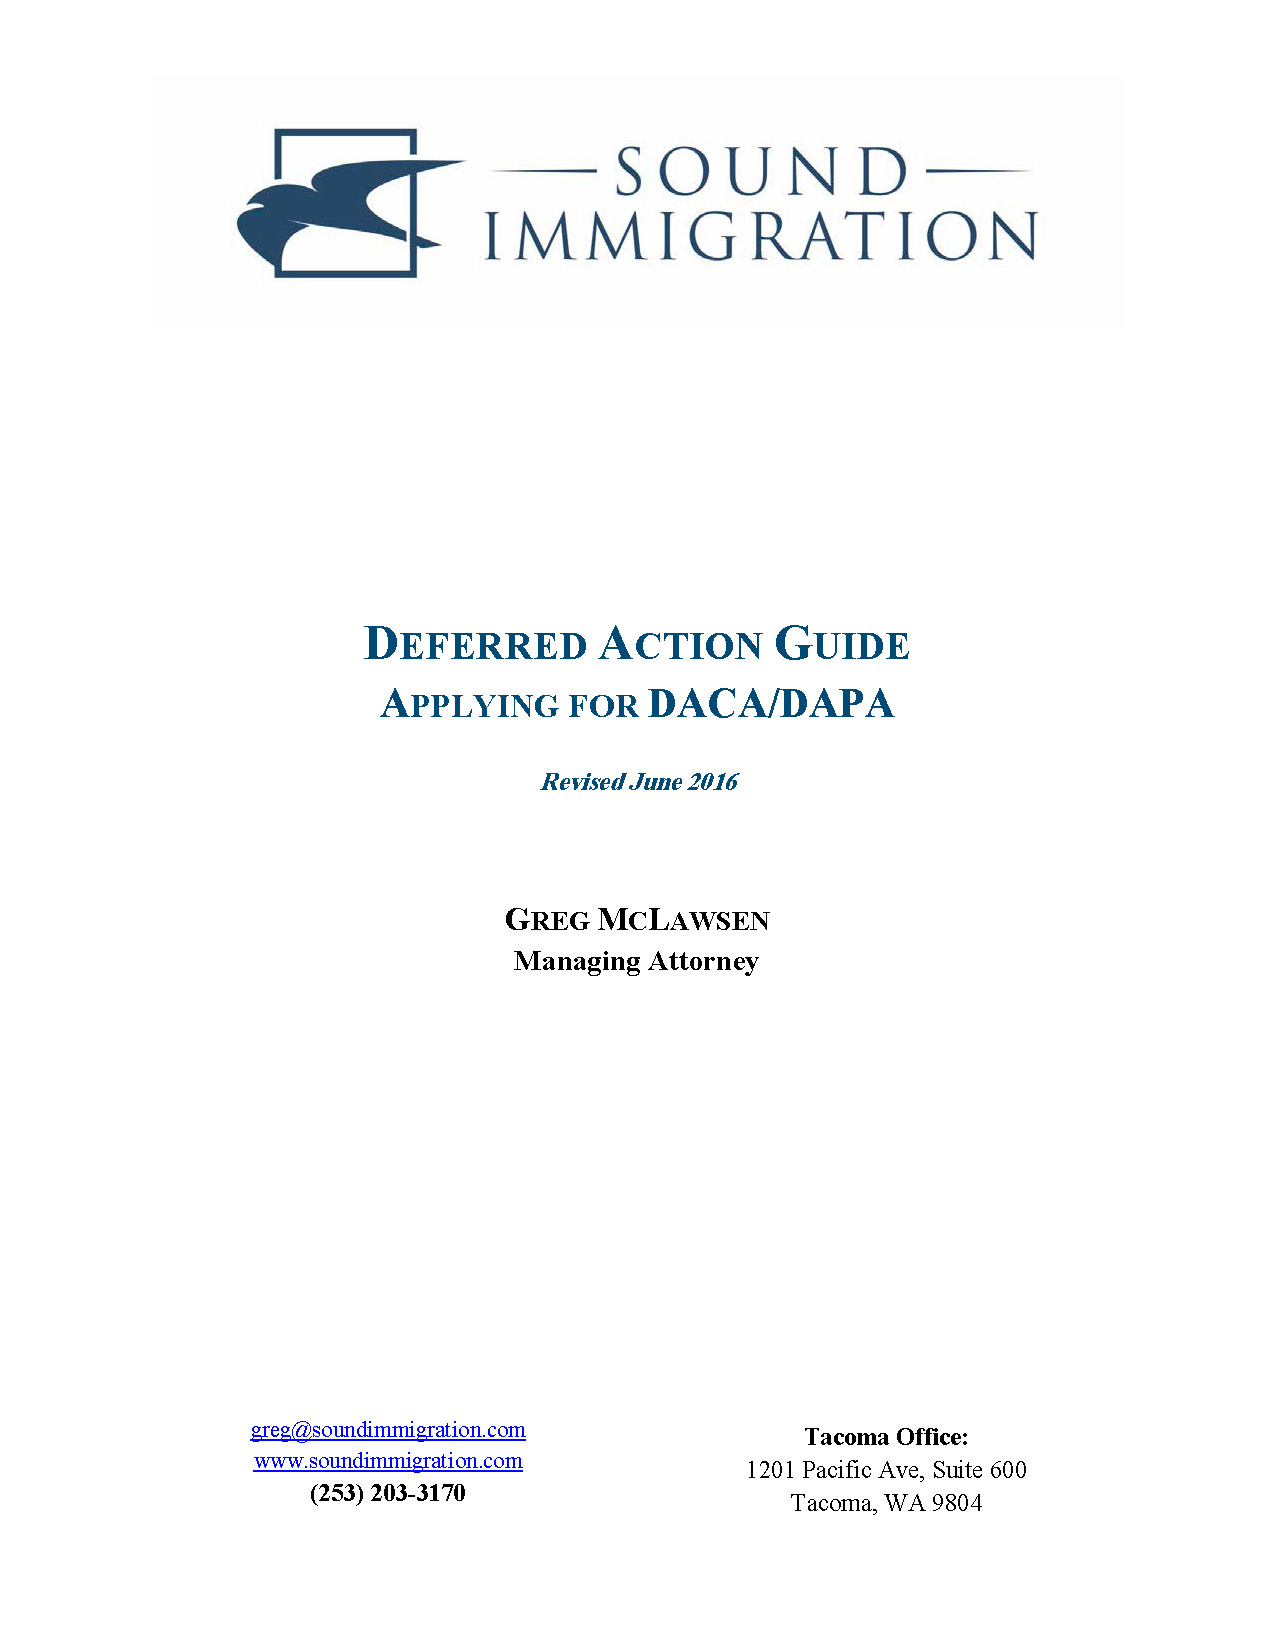 Deferred Action Guide; Applying for DACA/DAPA - Sound Immigration